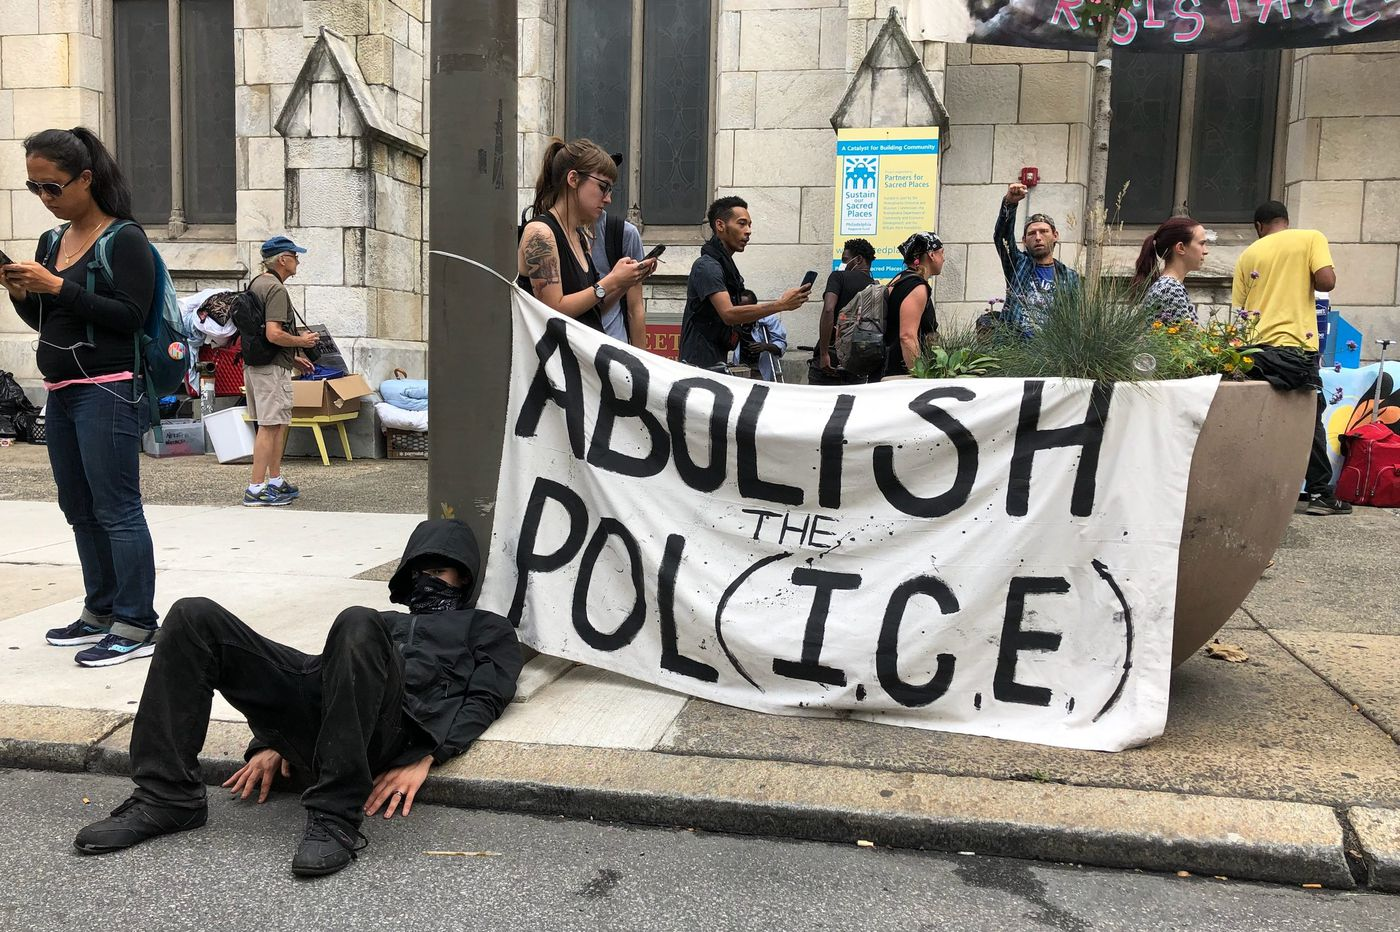 Philadelphia police shut down new Occupy ICE camp near City Hall, four demonstrators taken away as protests erupt